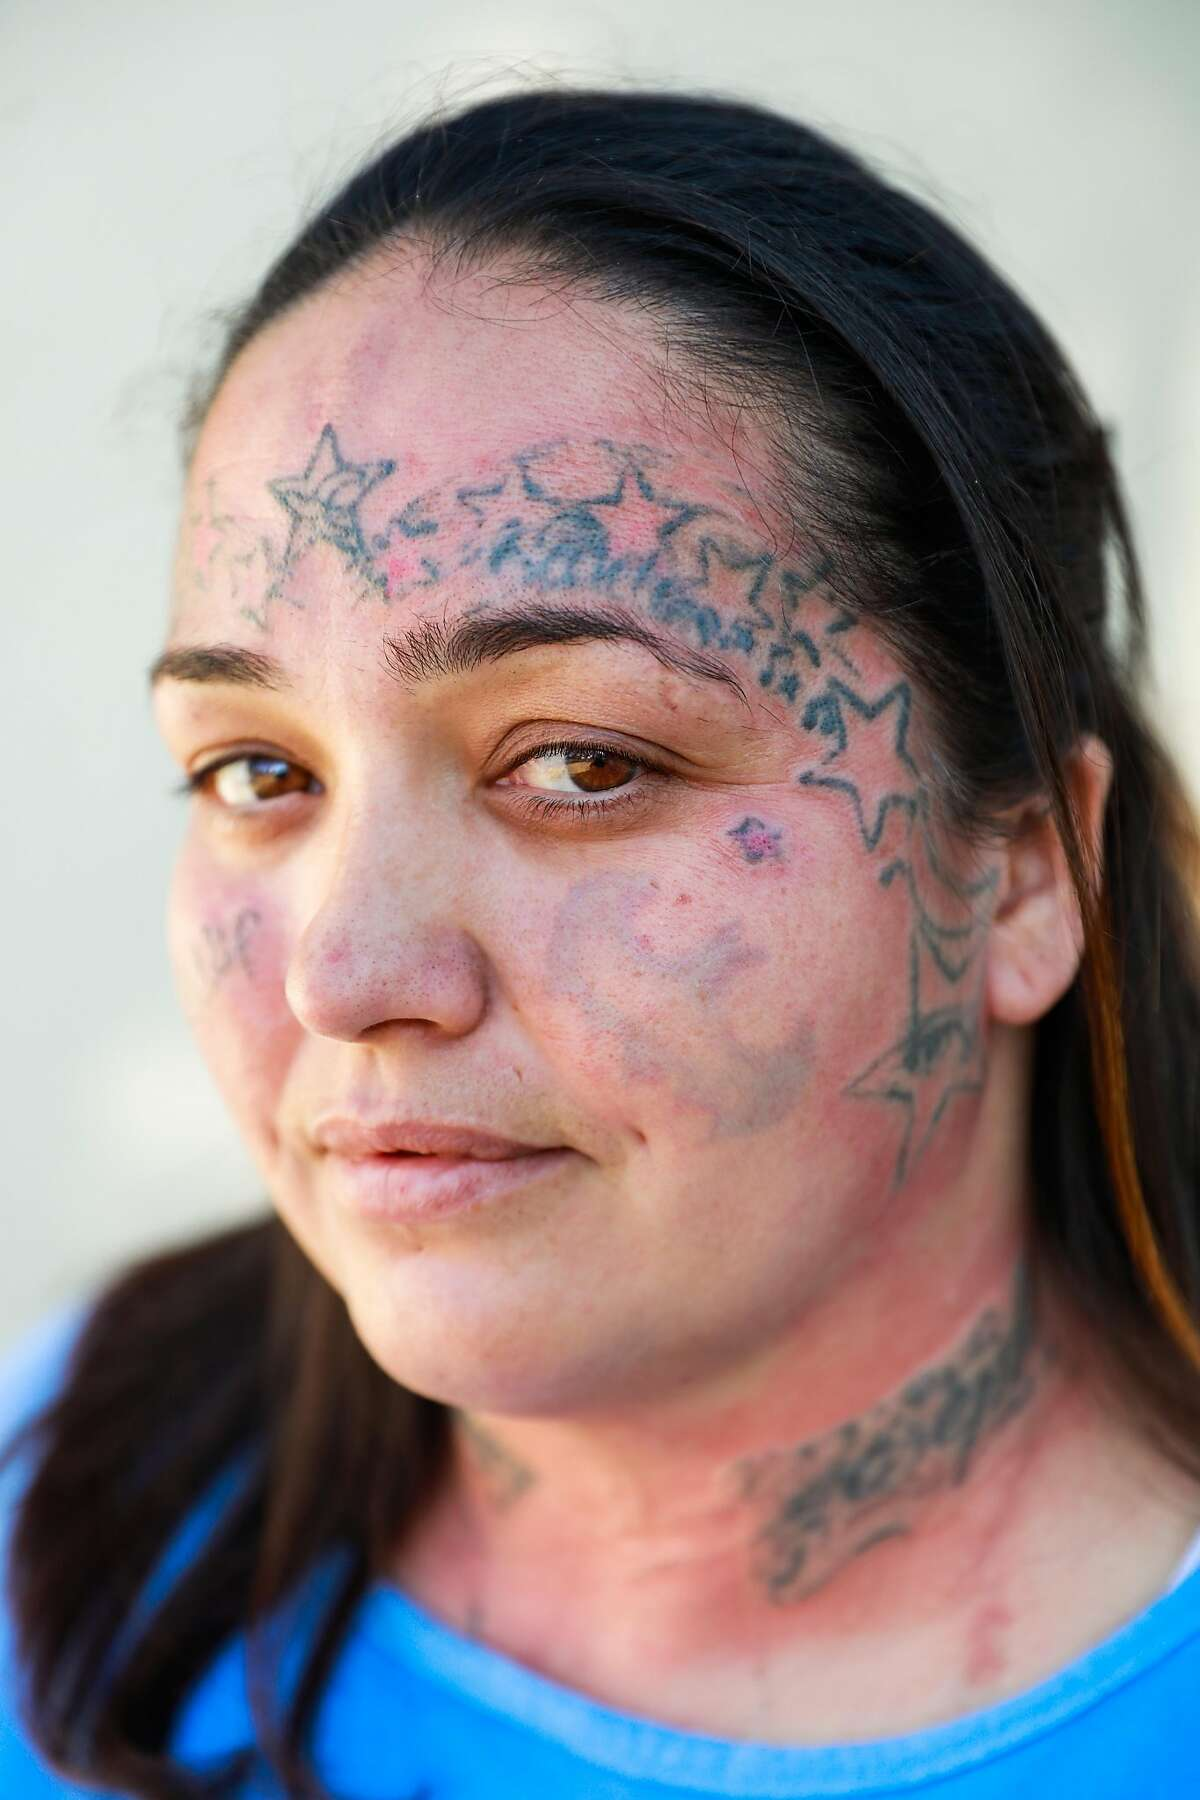 April Diaz, 36, stands for a portrait moments after a tattoo laser removal treatment for all of the tattoo's on her face at the Folsom women's facility at the Folsom state prison in Folsom, California, on Friday, Sept. 13, 2019. April said her dad gave her her first tattoo at age 15.